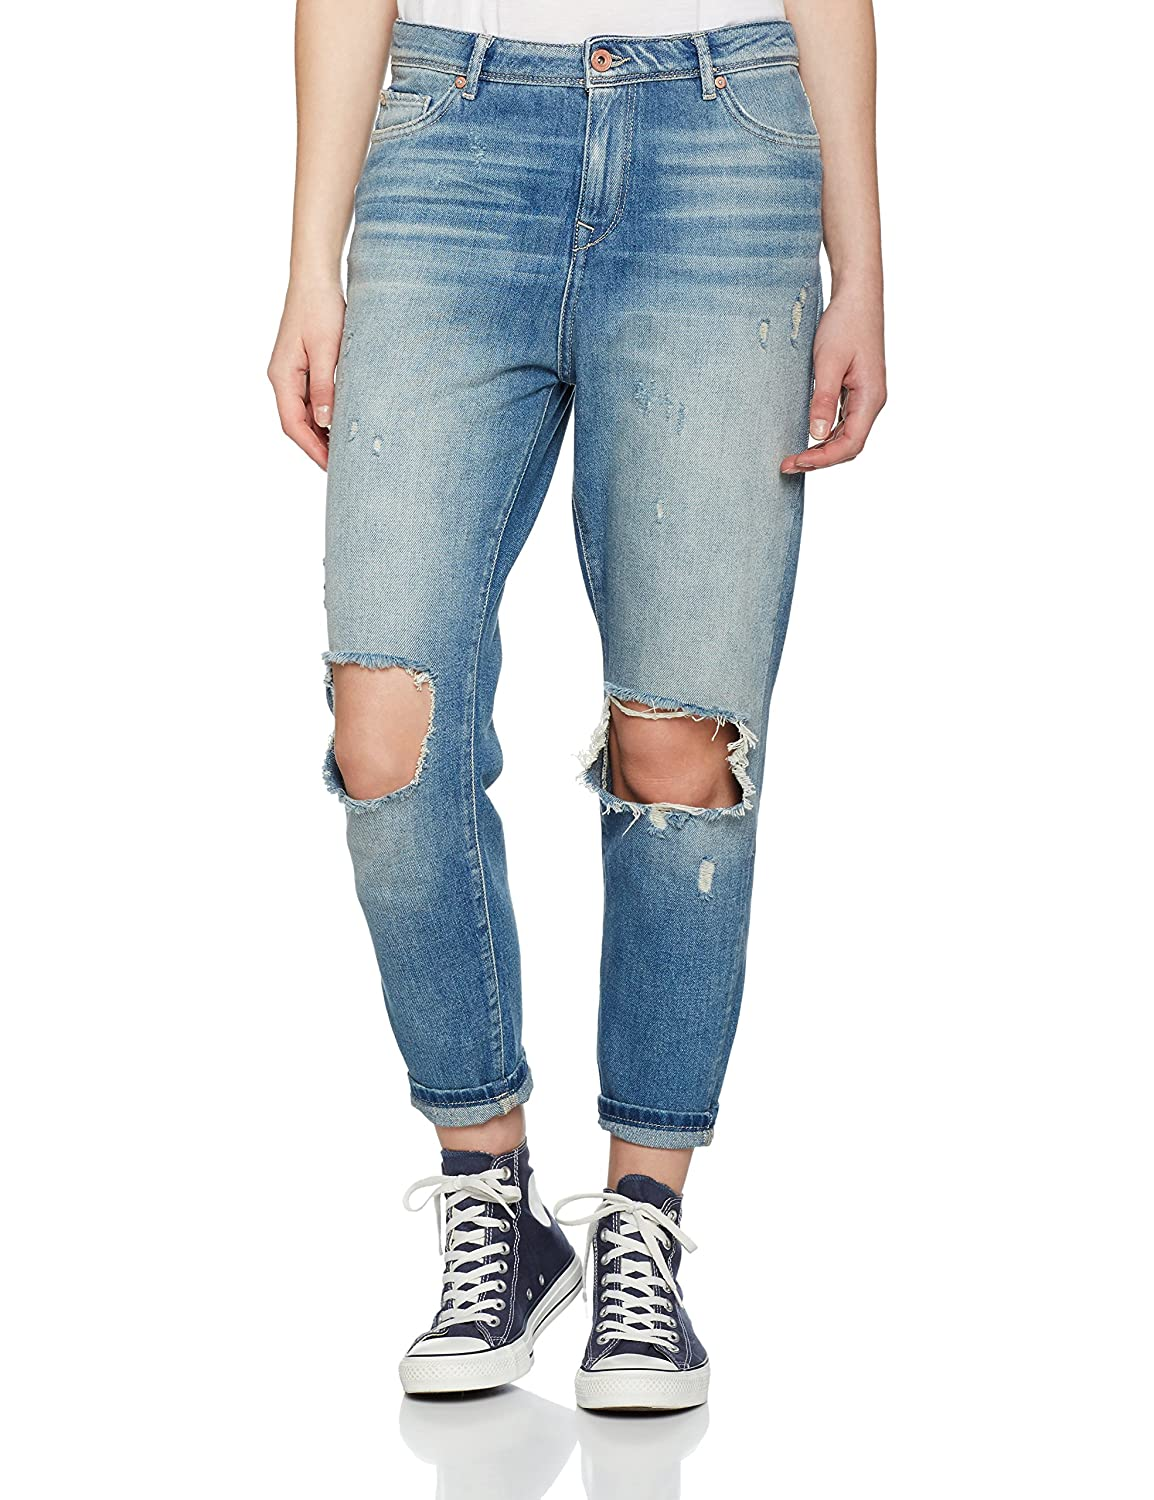 Only Boyfriend Jeans para Mujer